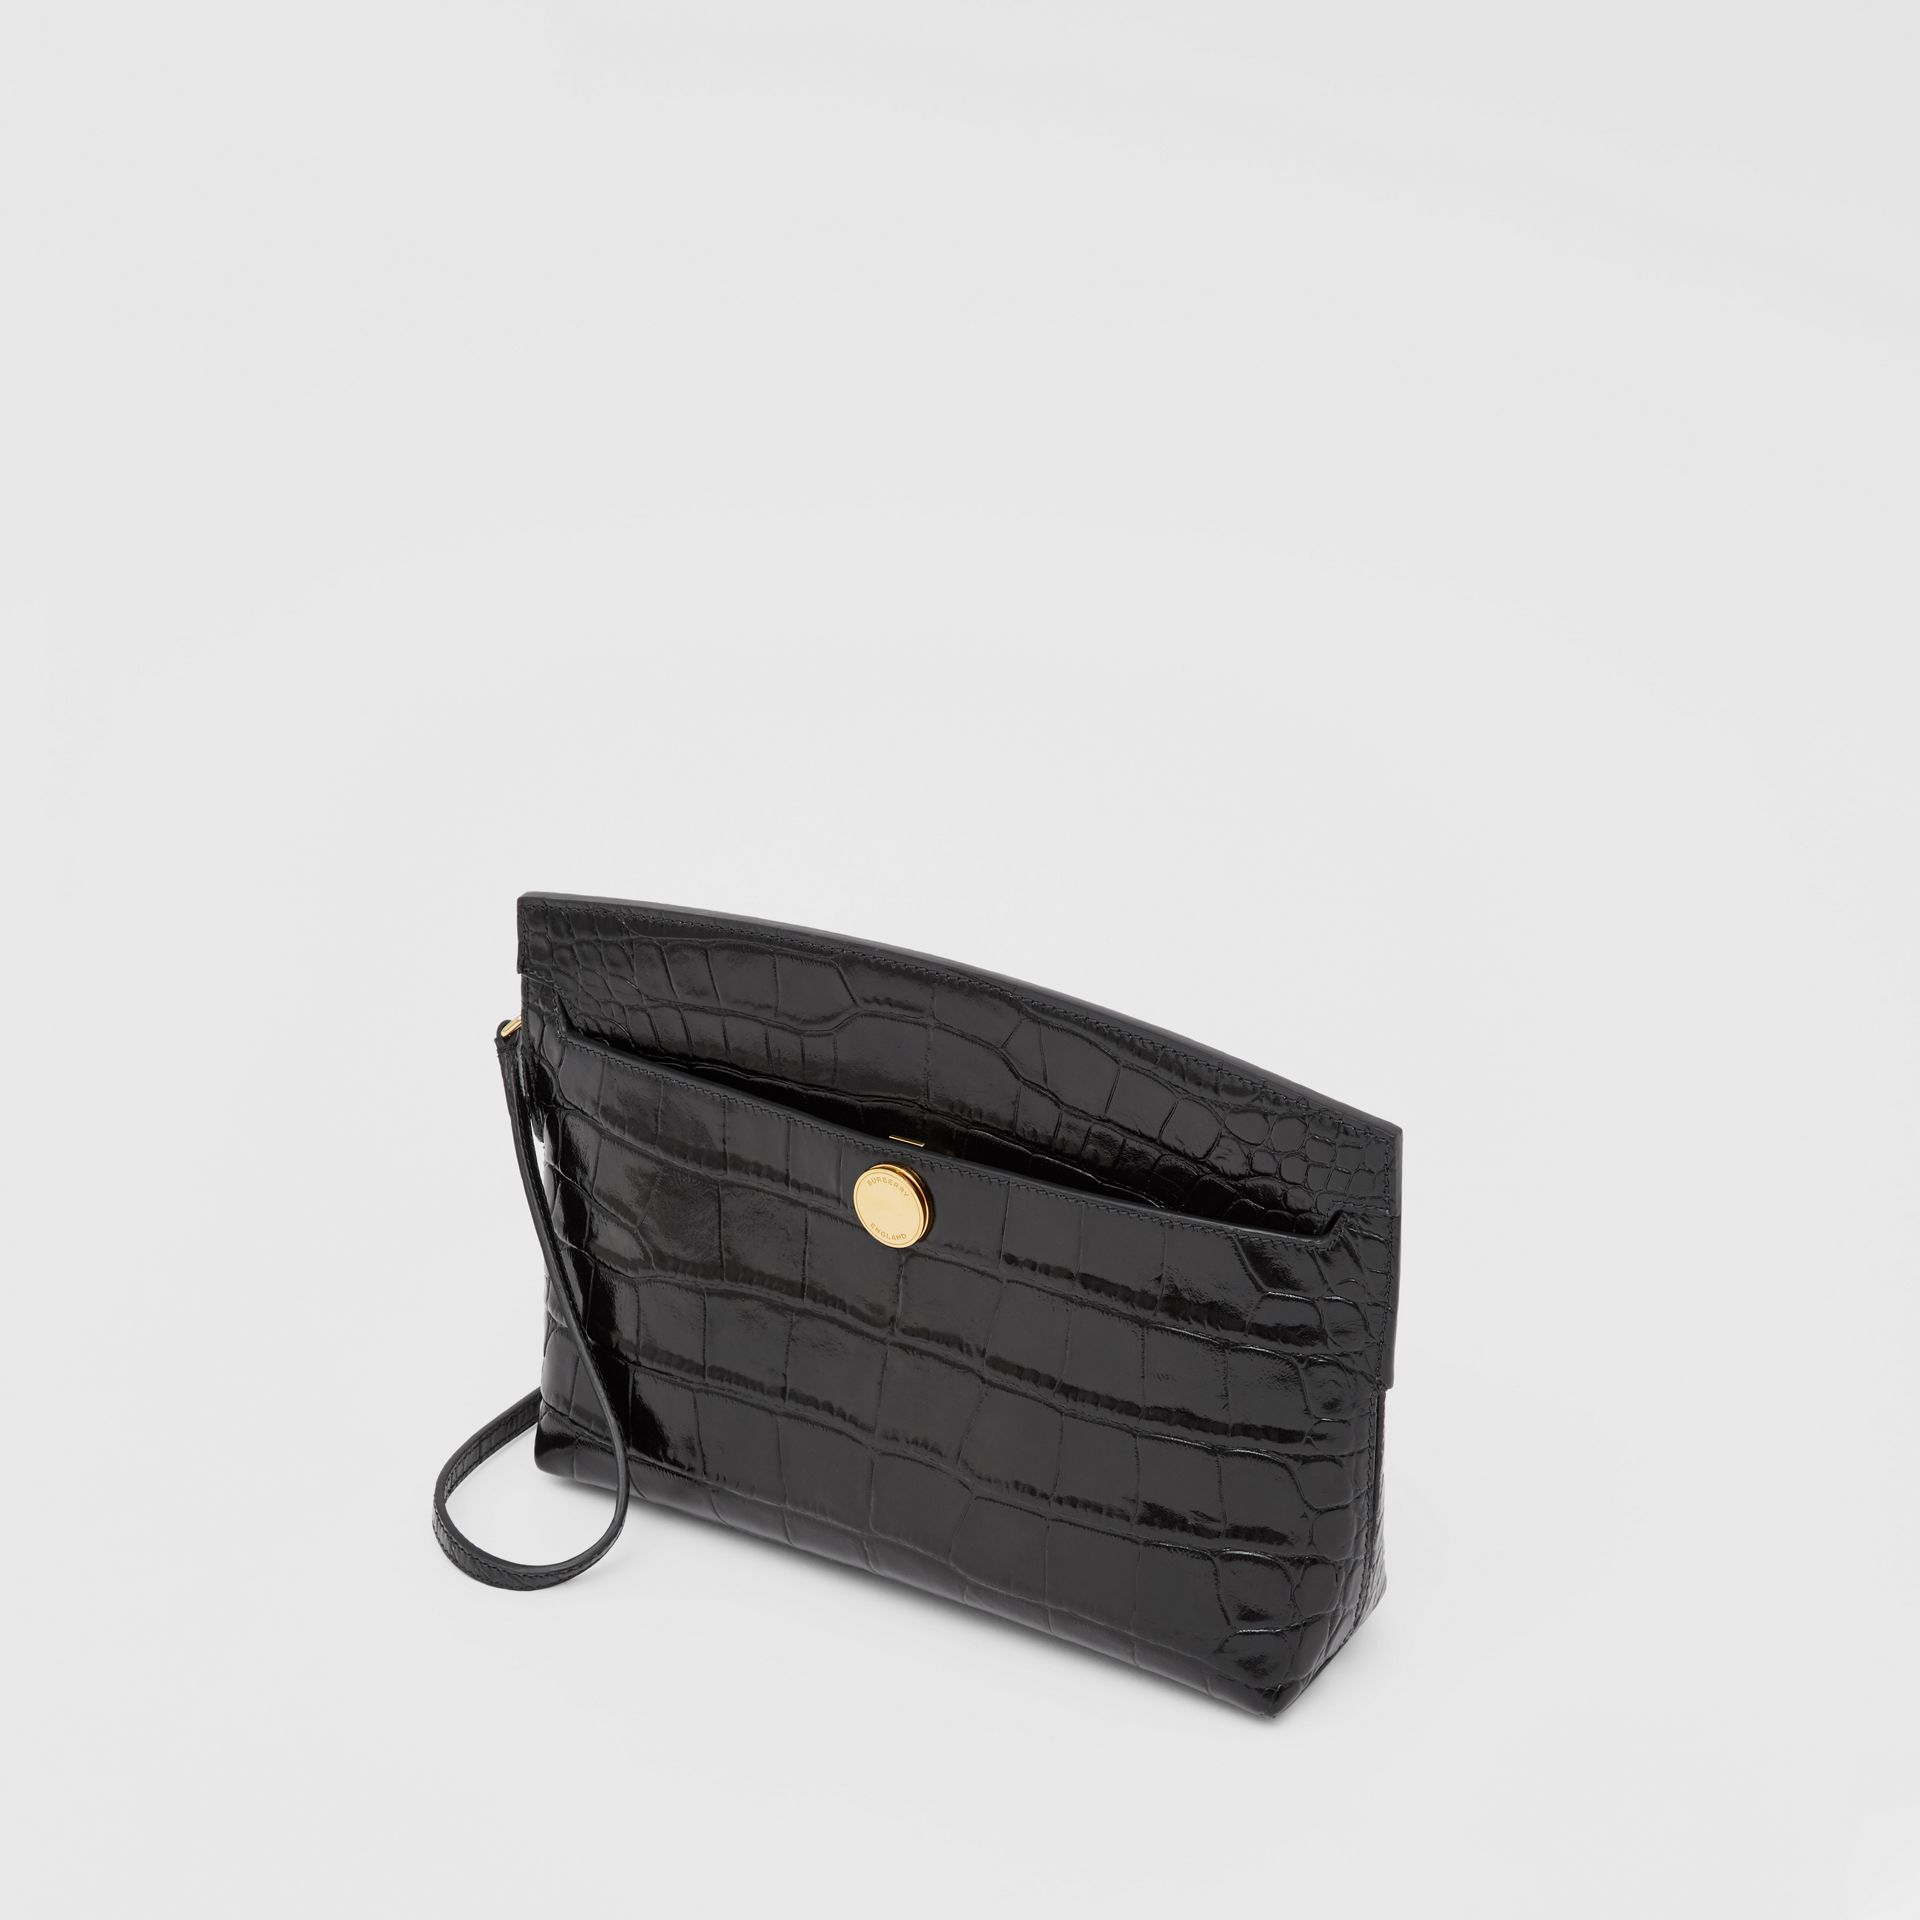 Embossed Leather Society Clutch in Black - Women | Burberry - gallery image 3